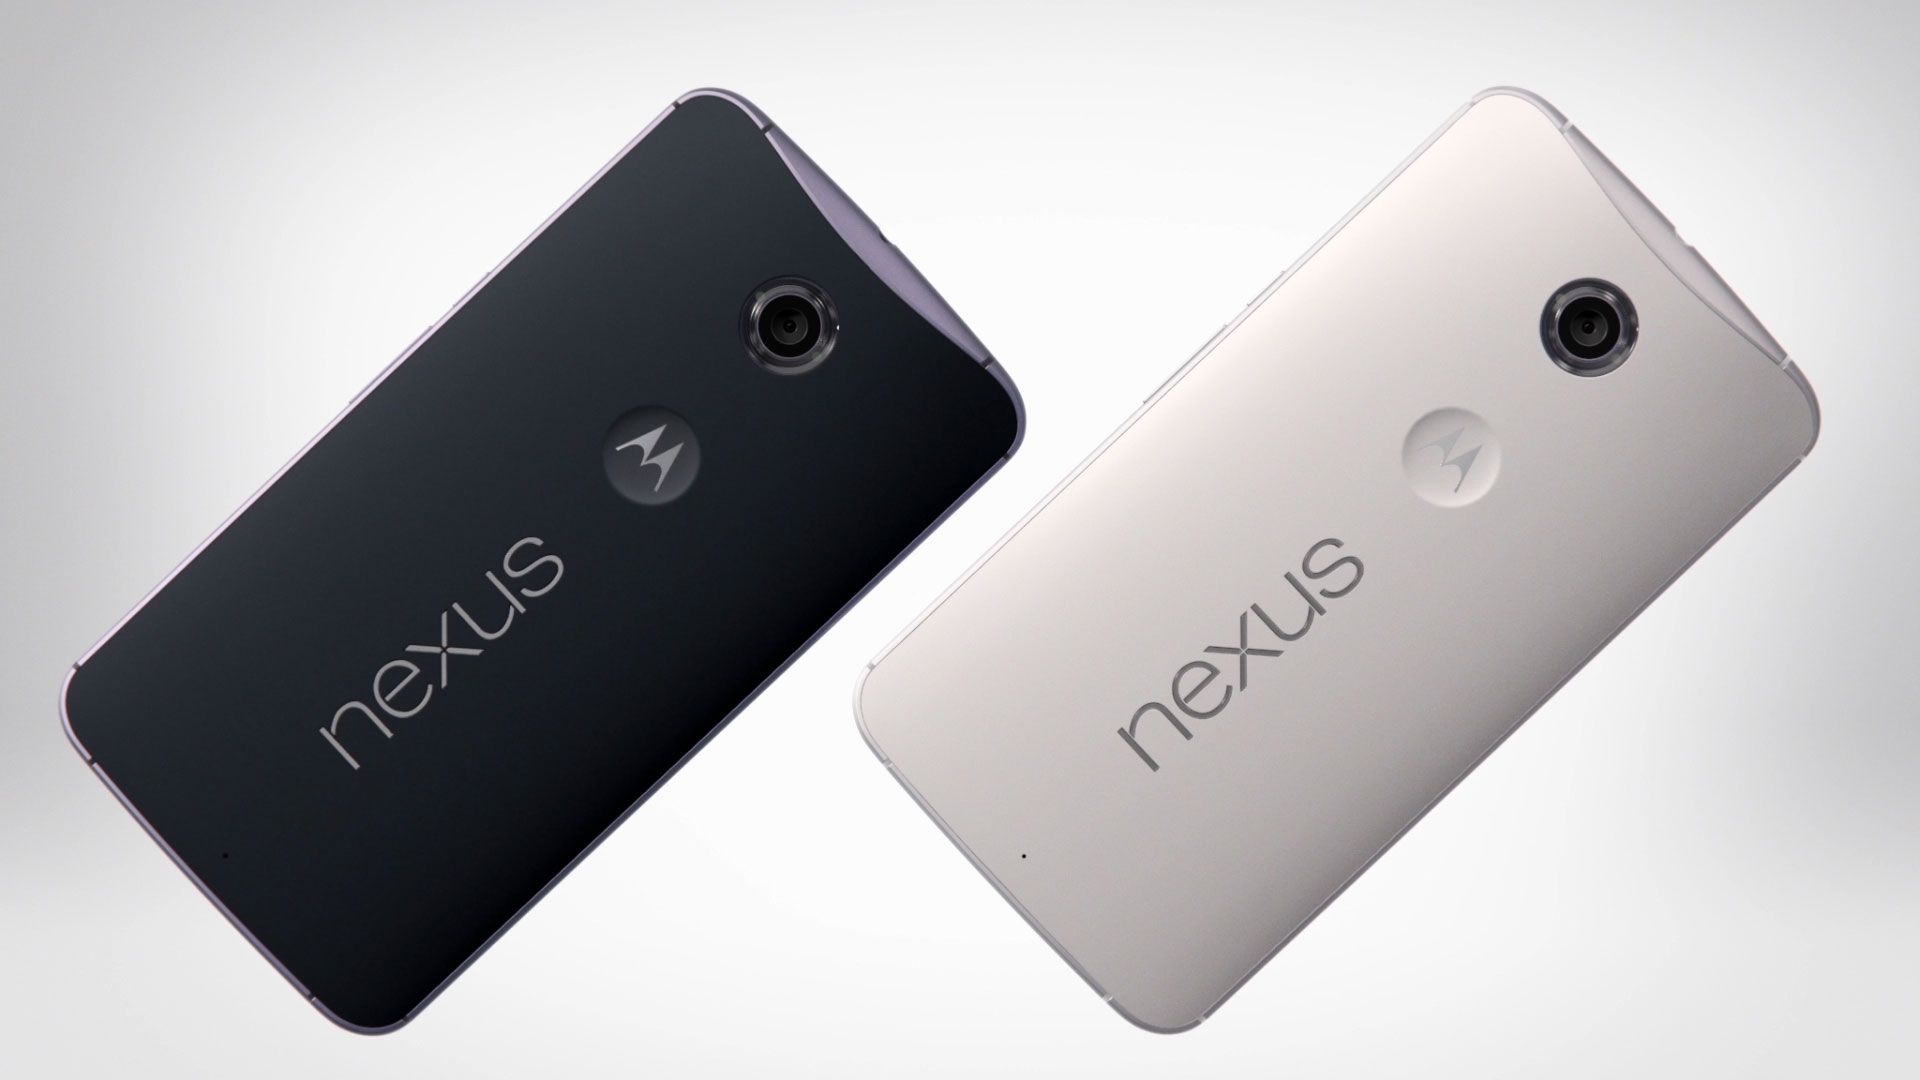 The Motorola Nexus 6